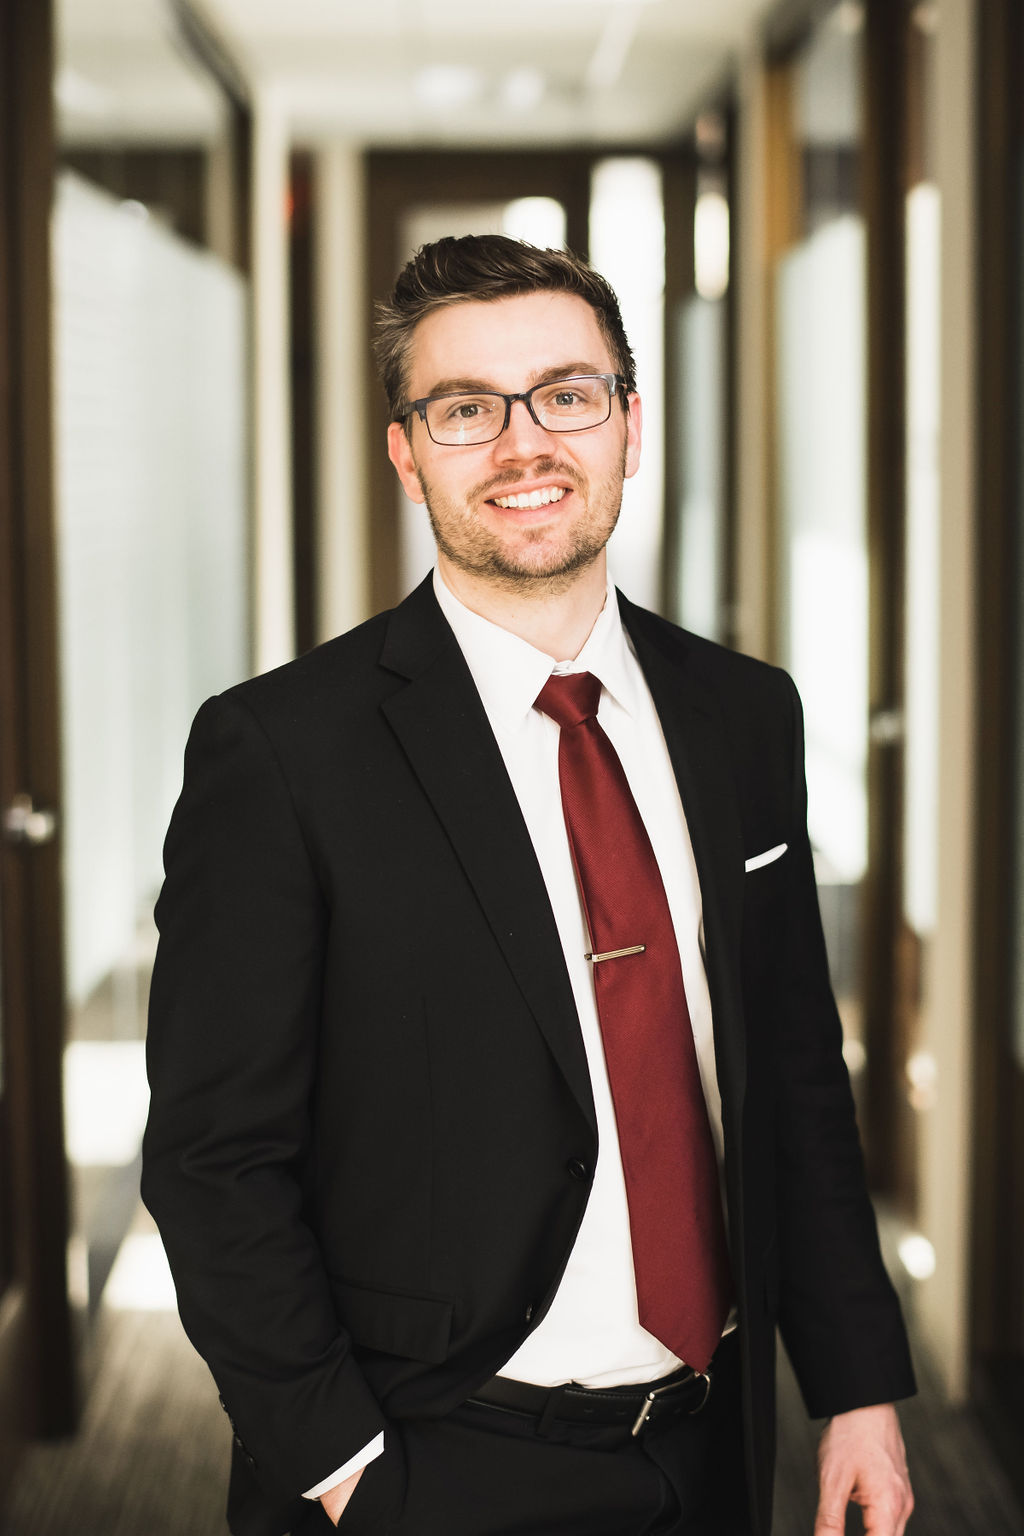 Conor Manning is an advisor at the Vadnais Heights office.